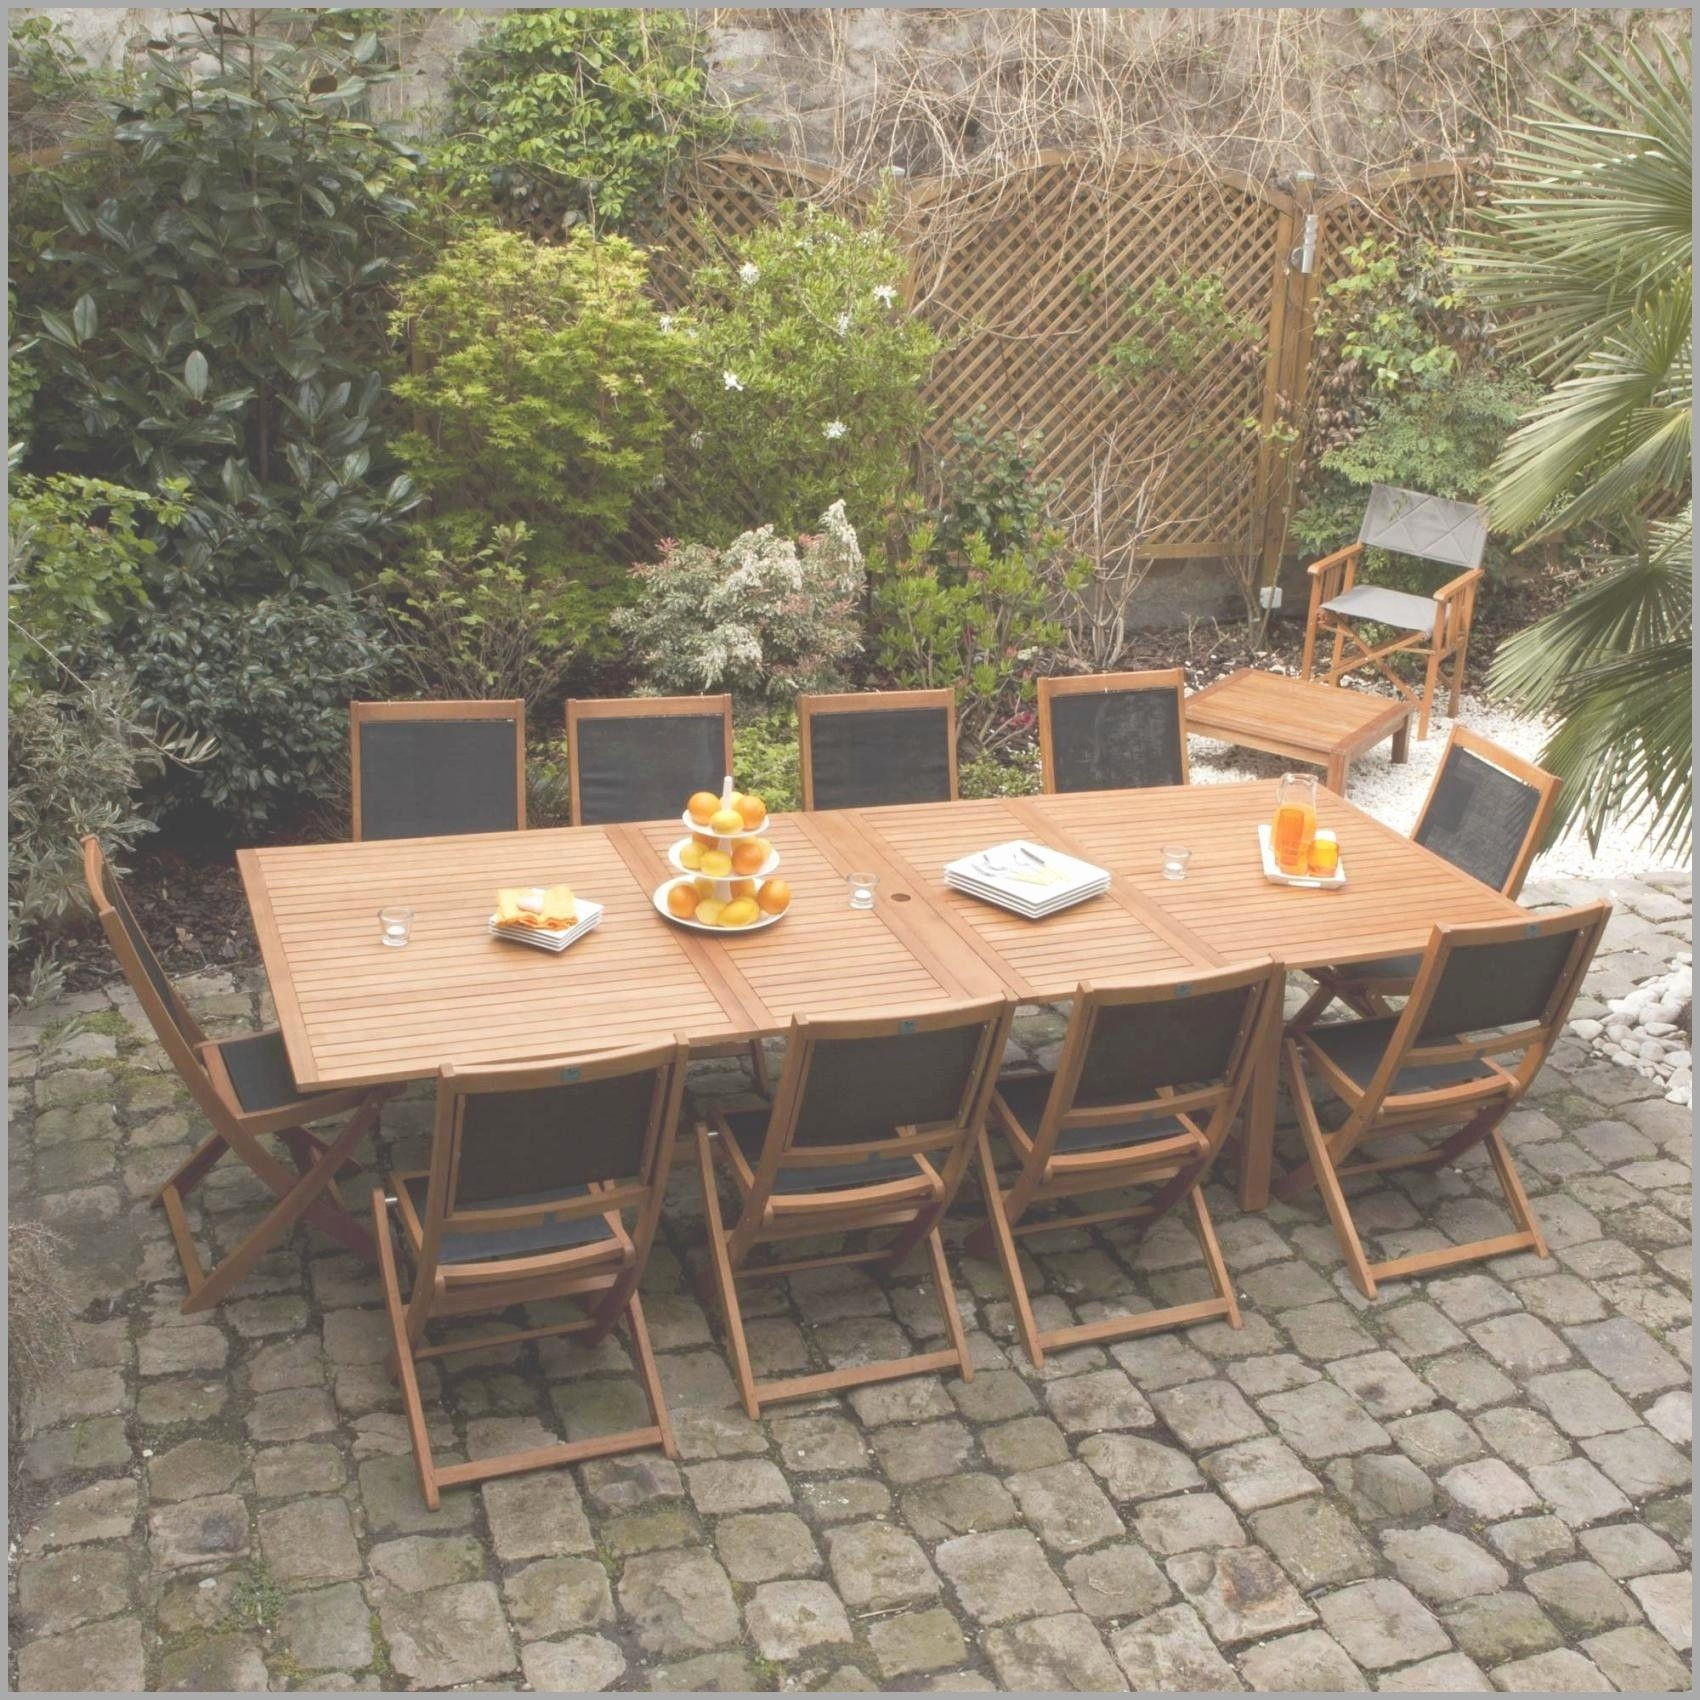 table de jardin bri arche bri arche mobilier de jardin of table de jardin bri arche 1